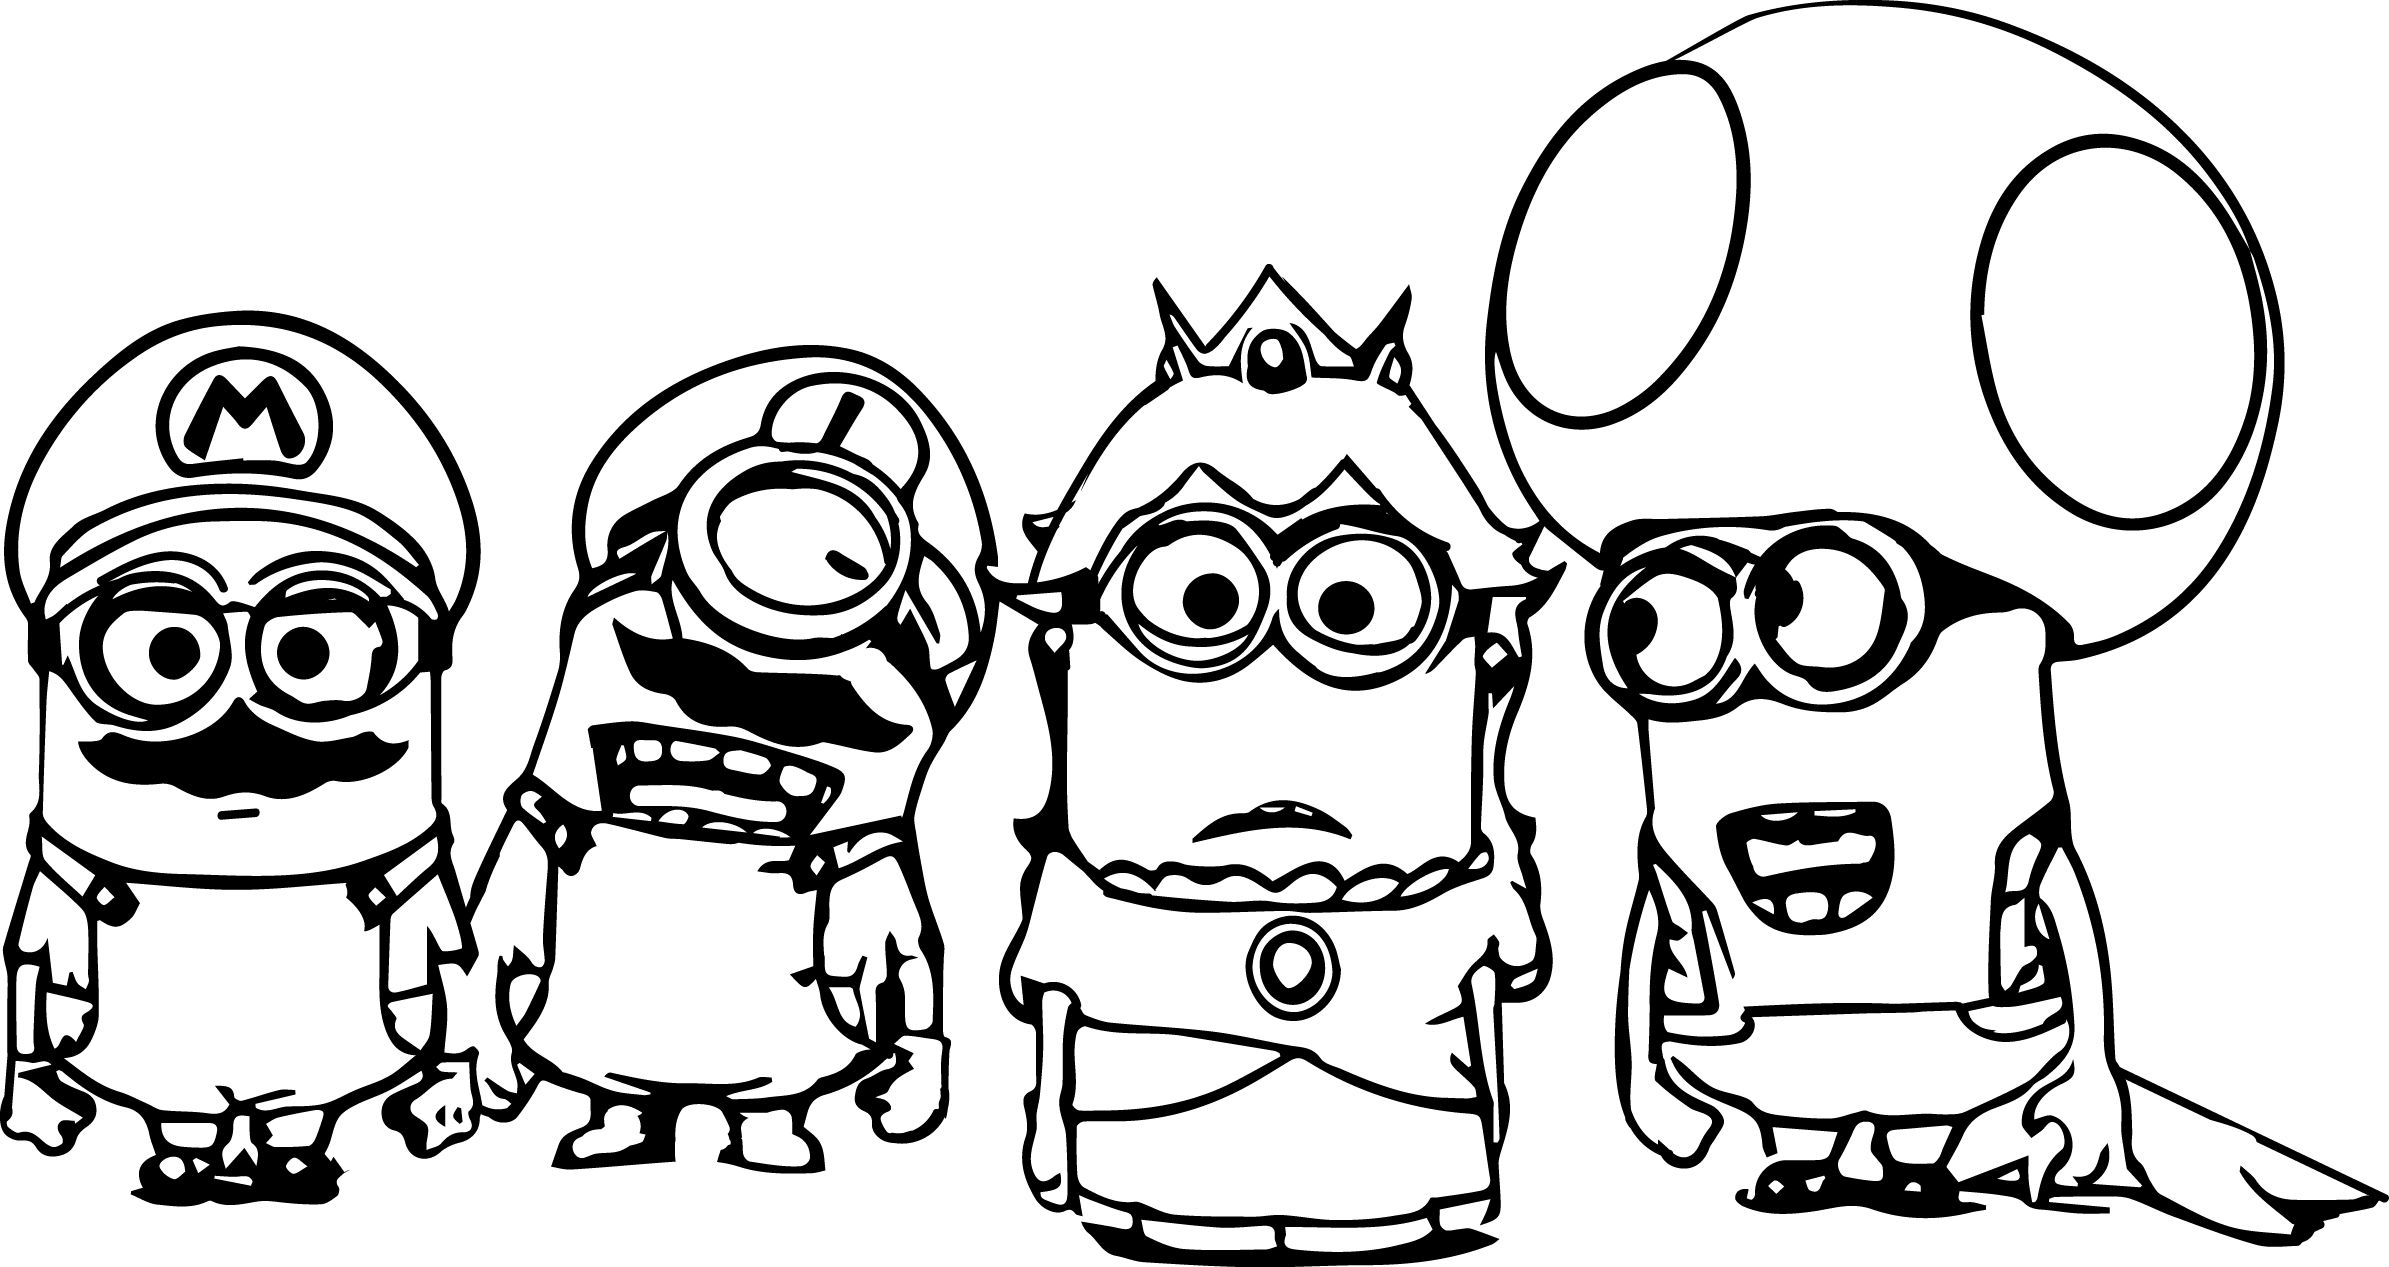 Coloring Pages Minions Super Mario Minions Coloring Page Wecoloringpage Entitlementtrap Com Minions Coloring Pages Minion Coloring Pages Mario Coloring Pages